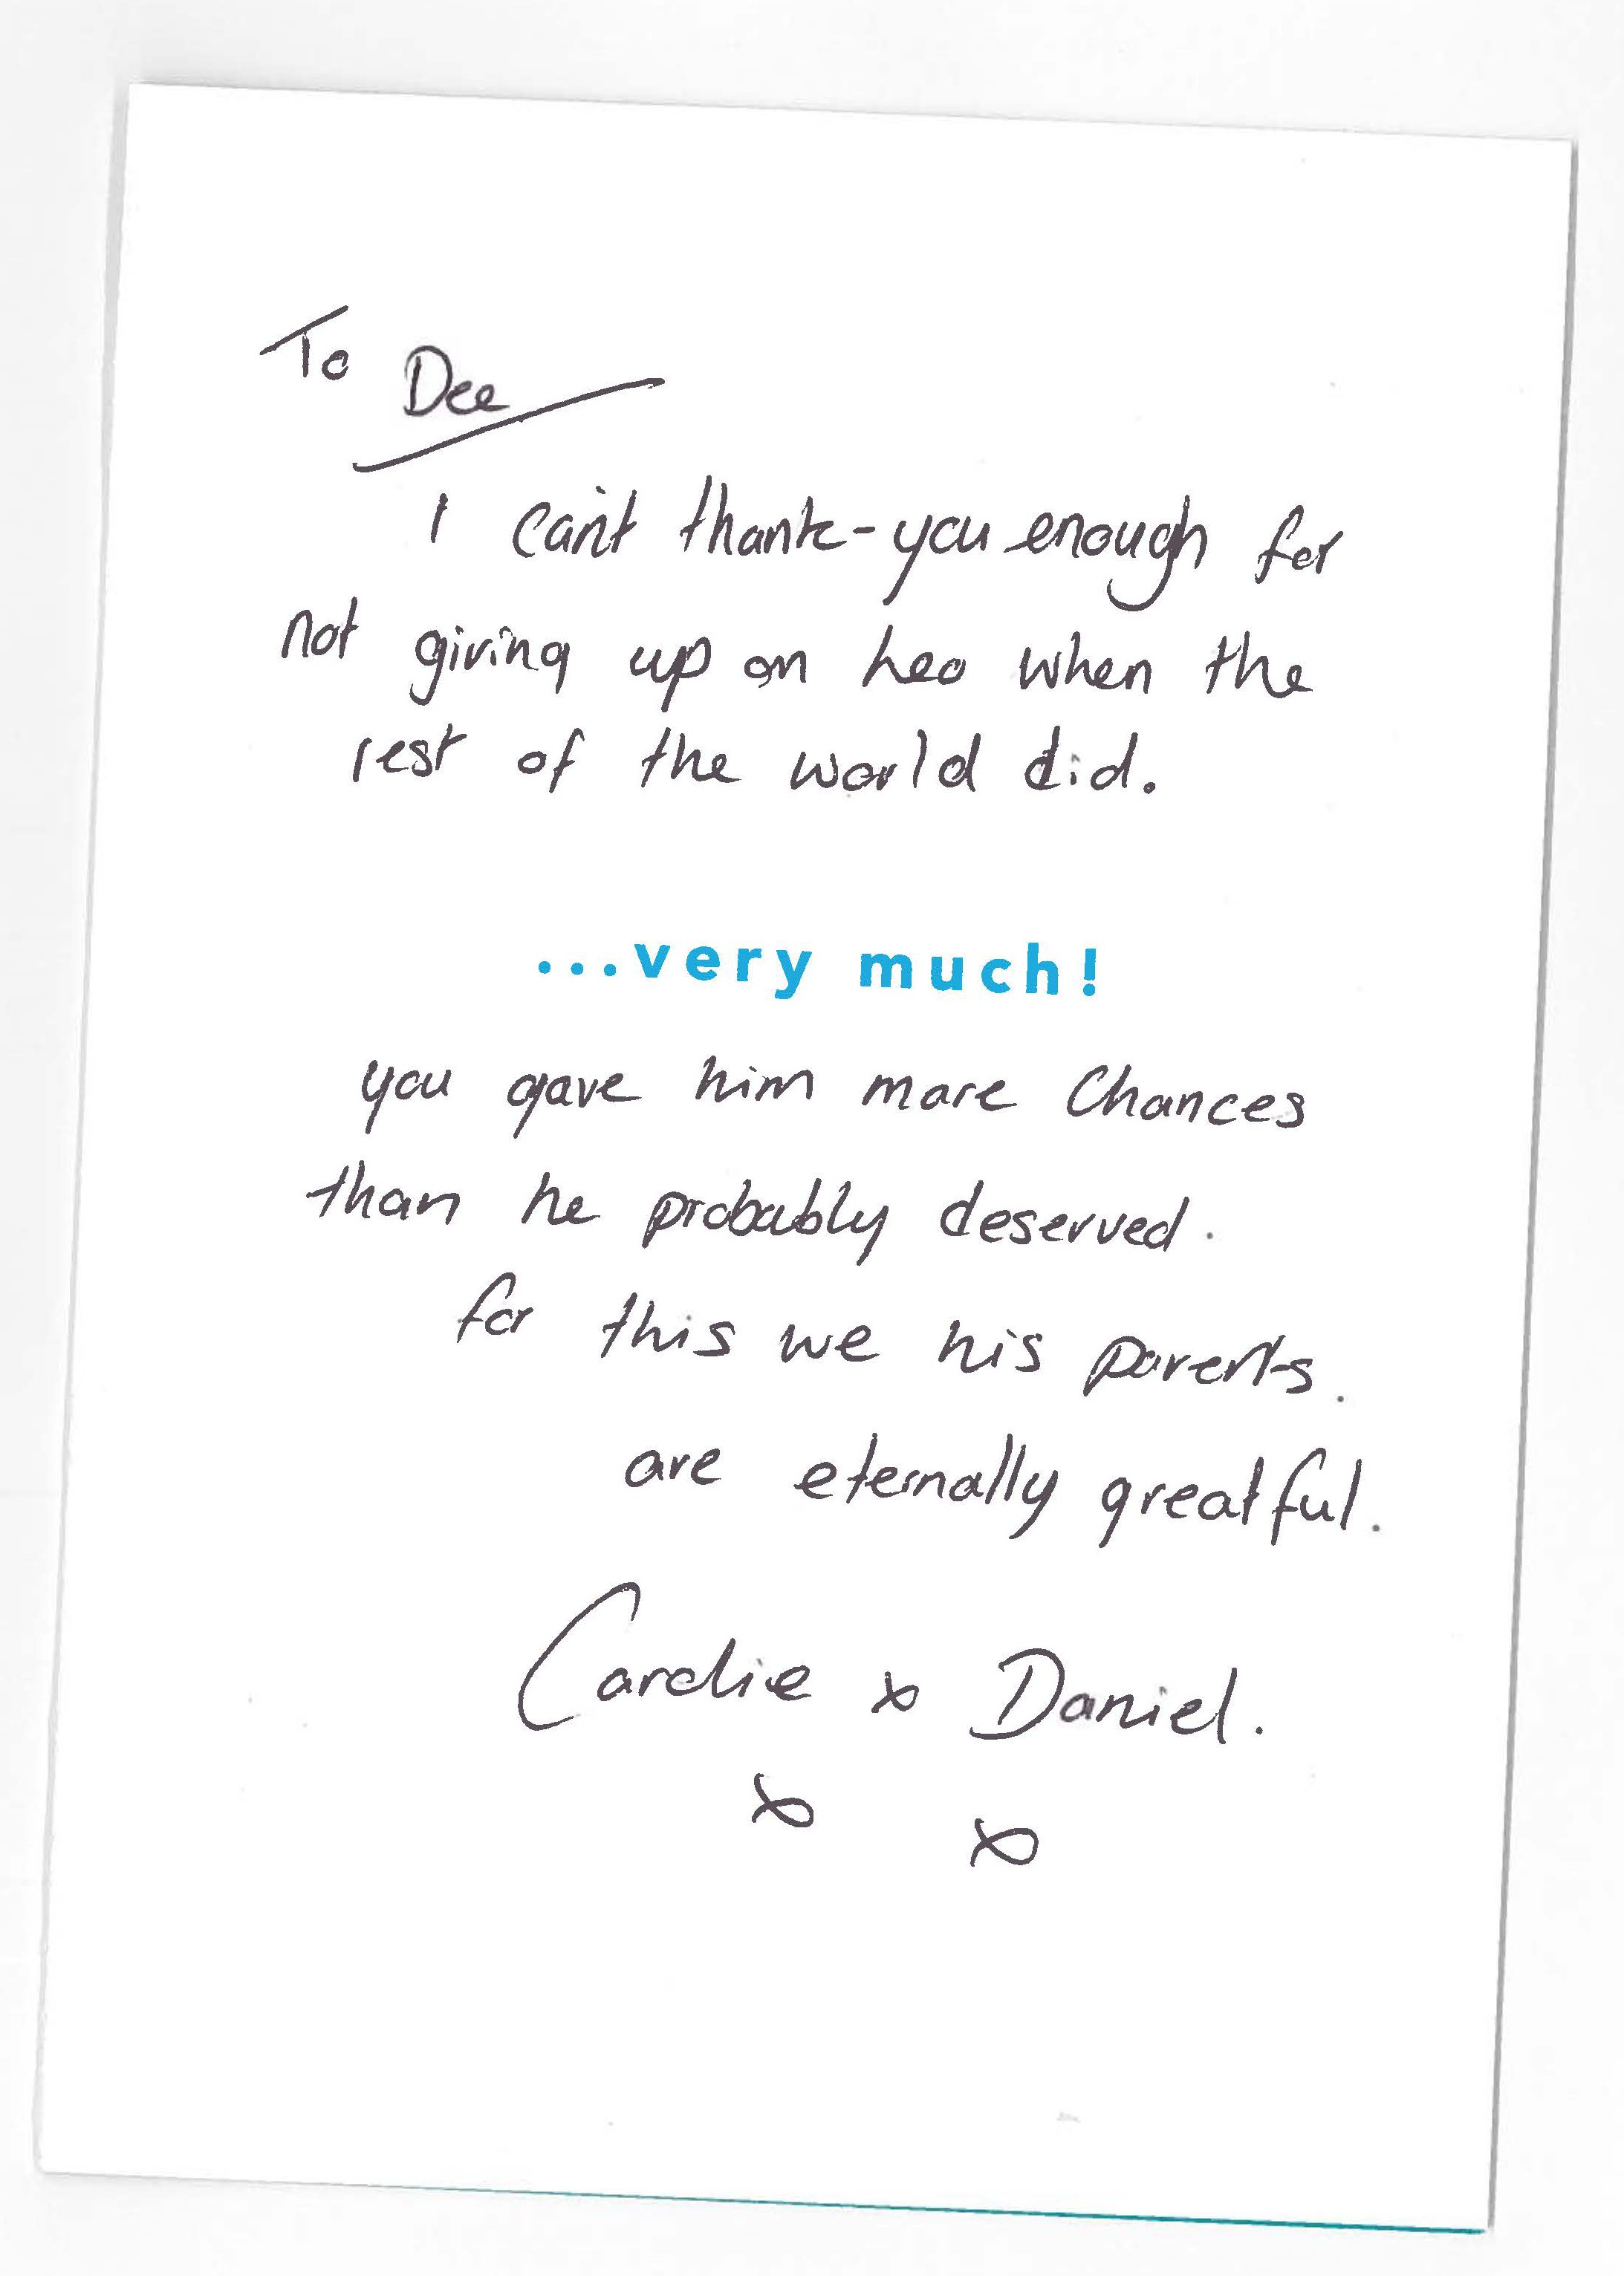 Thank You Card From Year 11 Pupil Parents To Headteacher 1